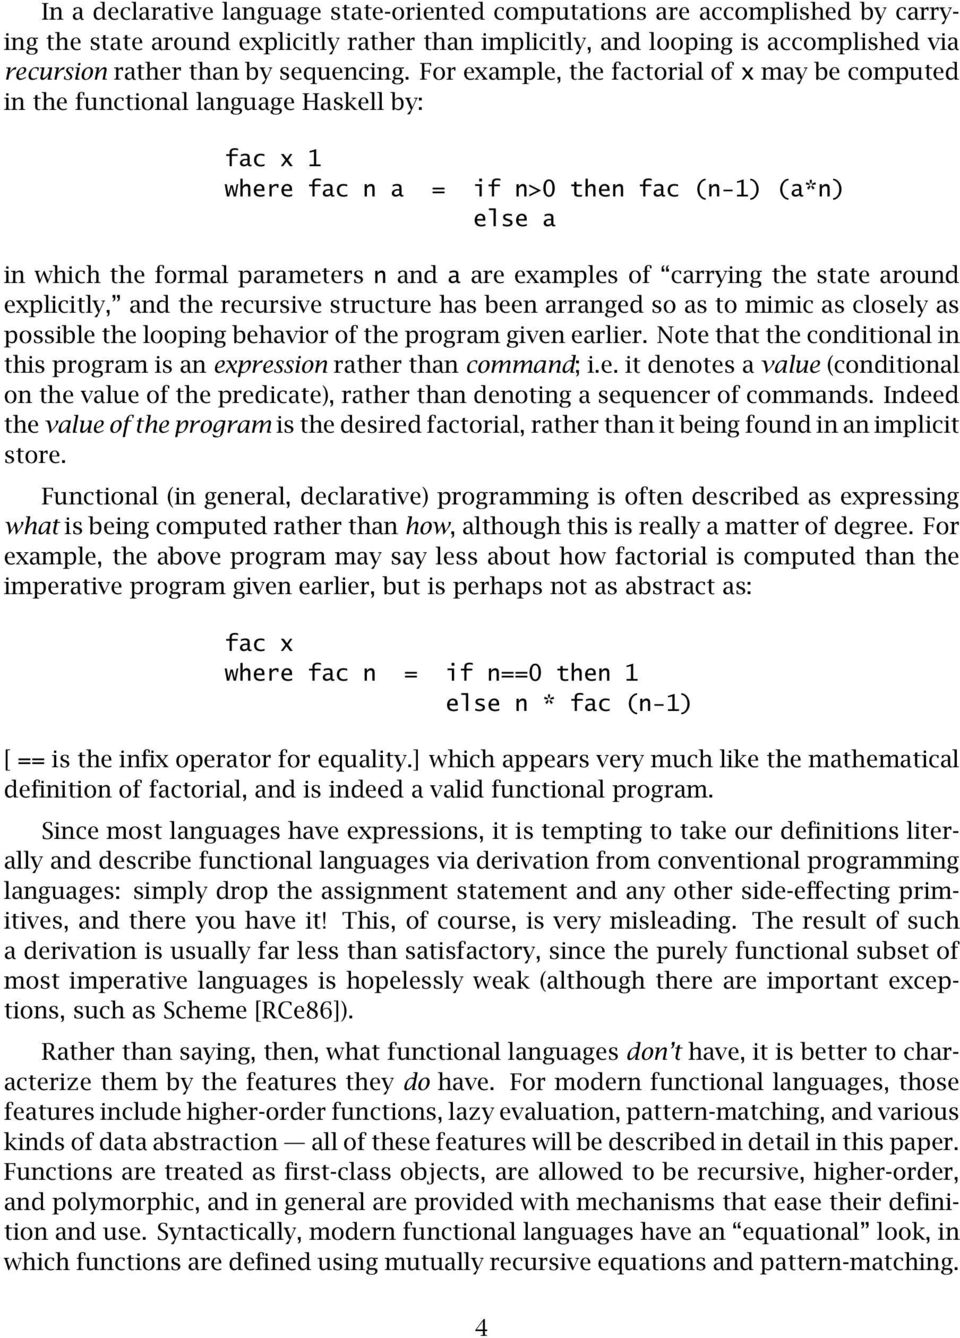 For example, the factorial of x may be computed in the functional language Haskell by: fac x 1 where fac n a = if n>0 then fac (n-1) (a*n) else a in which the formal parameters n and a are examples